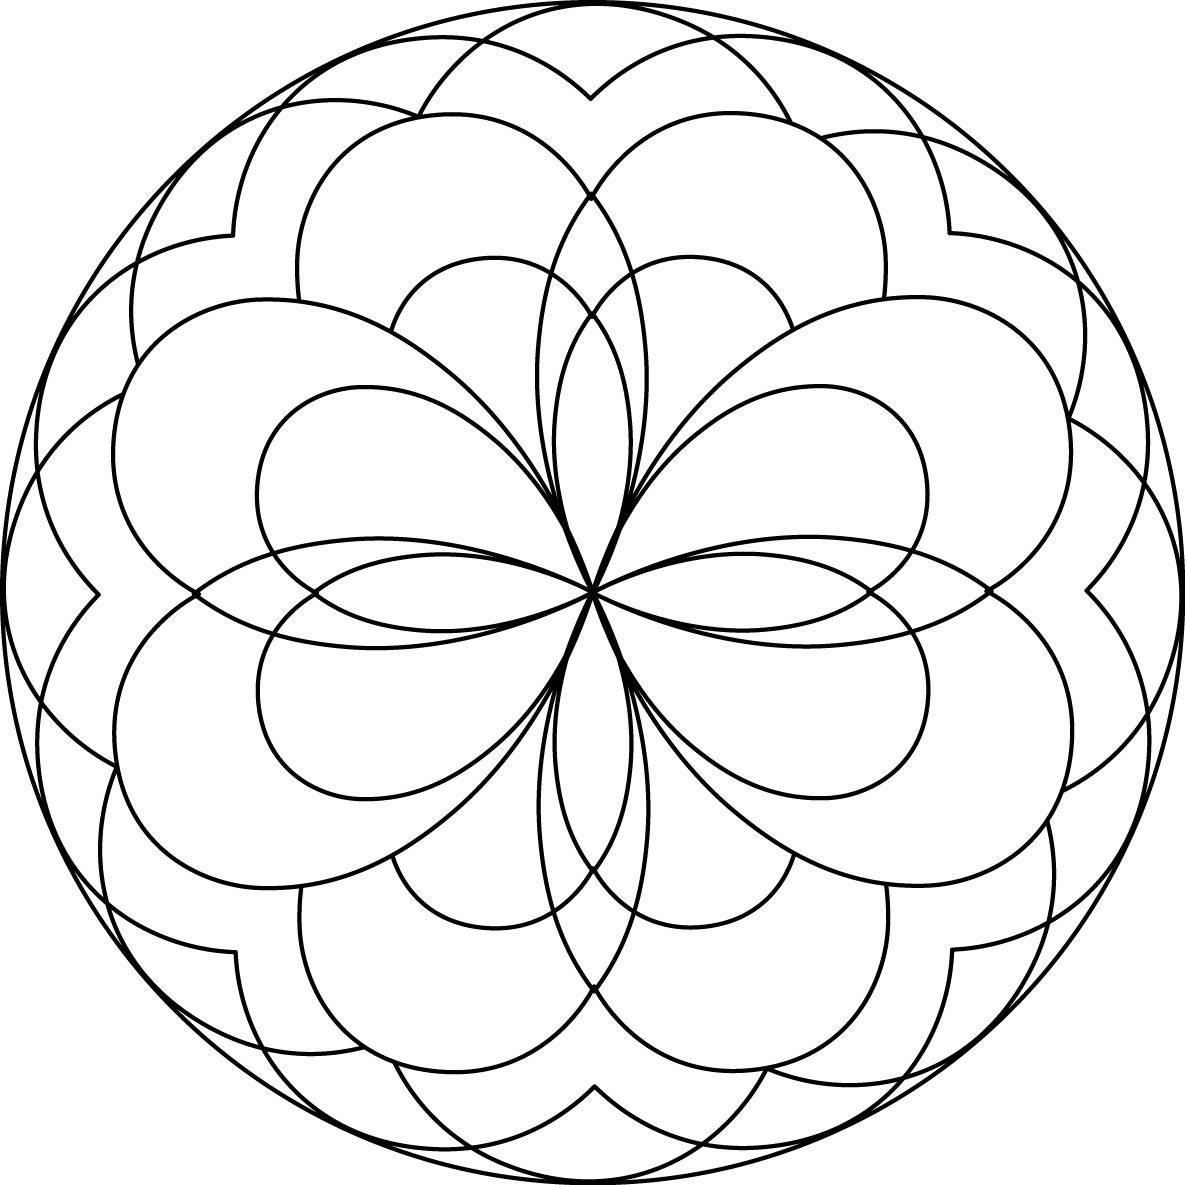 Free mandala coloring pages to print out - 22 Collections Of Free Mandala Coloring Pages For Kids